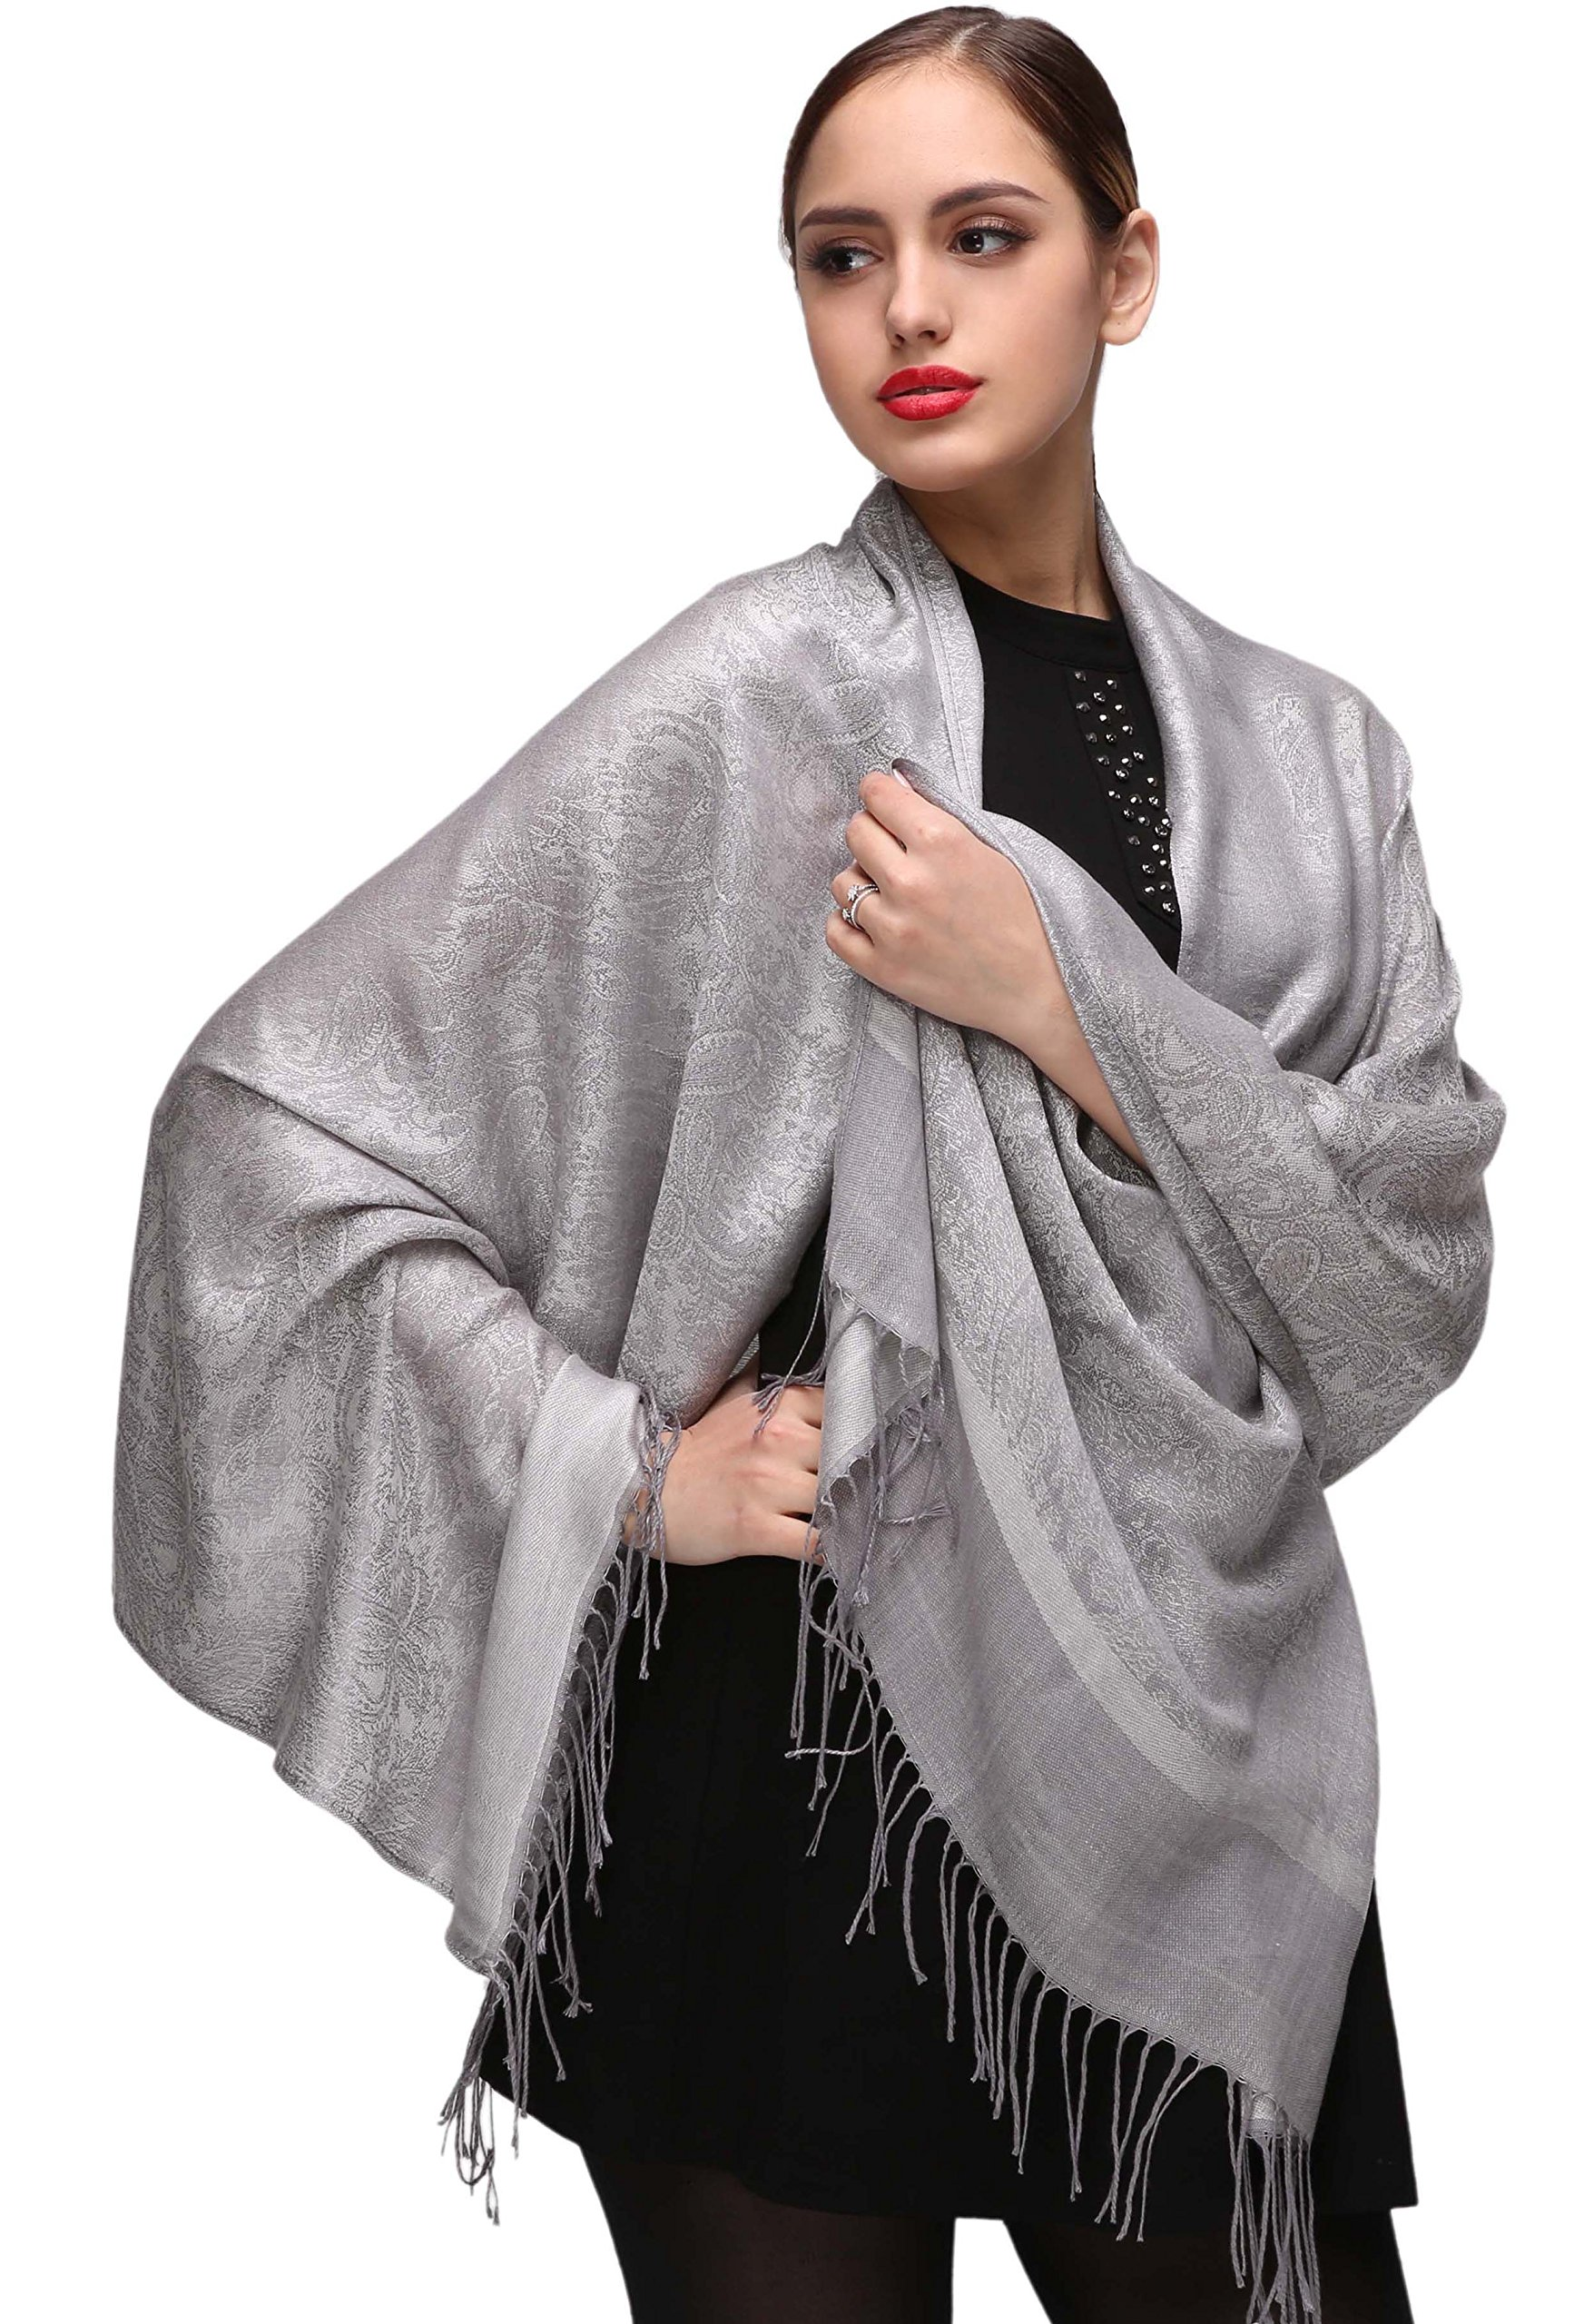 Silver Pashminas Shawls and Wraps for Weddings or Evening Dresses